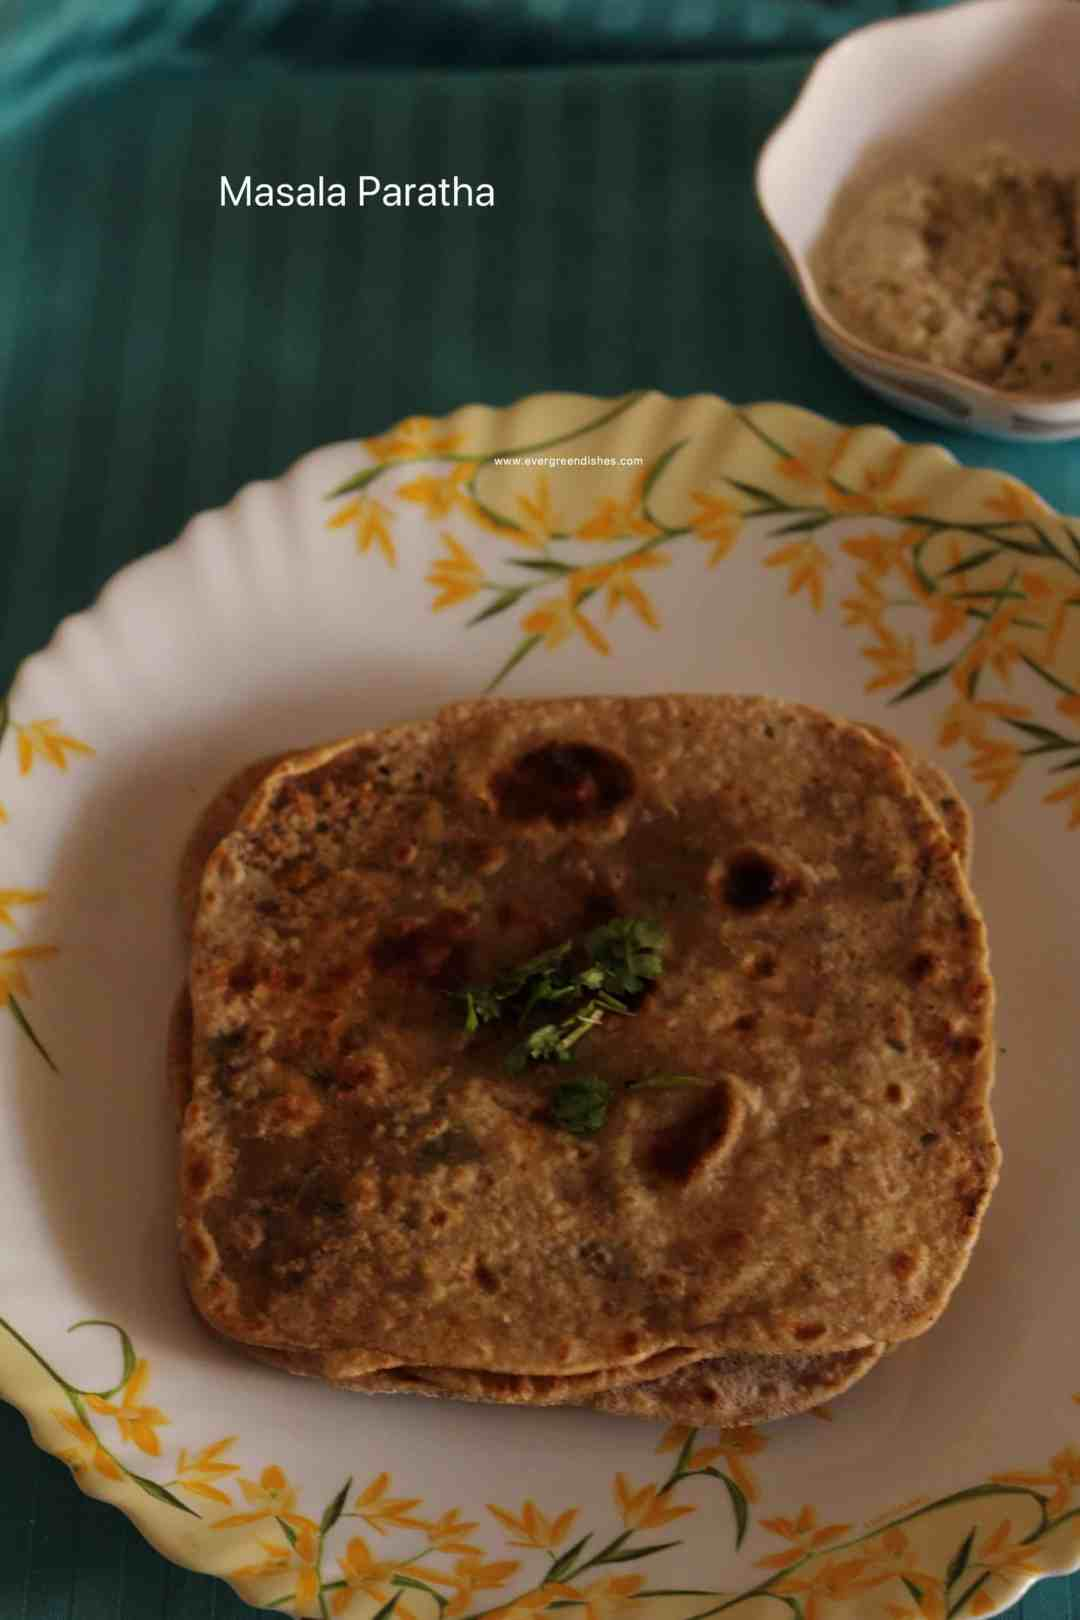 Masala parathas are spicy and different. They are ideal for lunch or dinner.